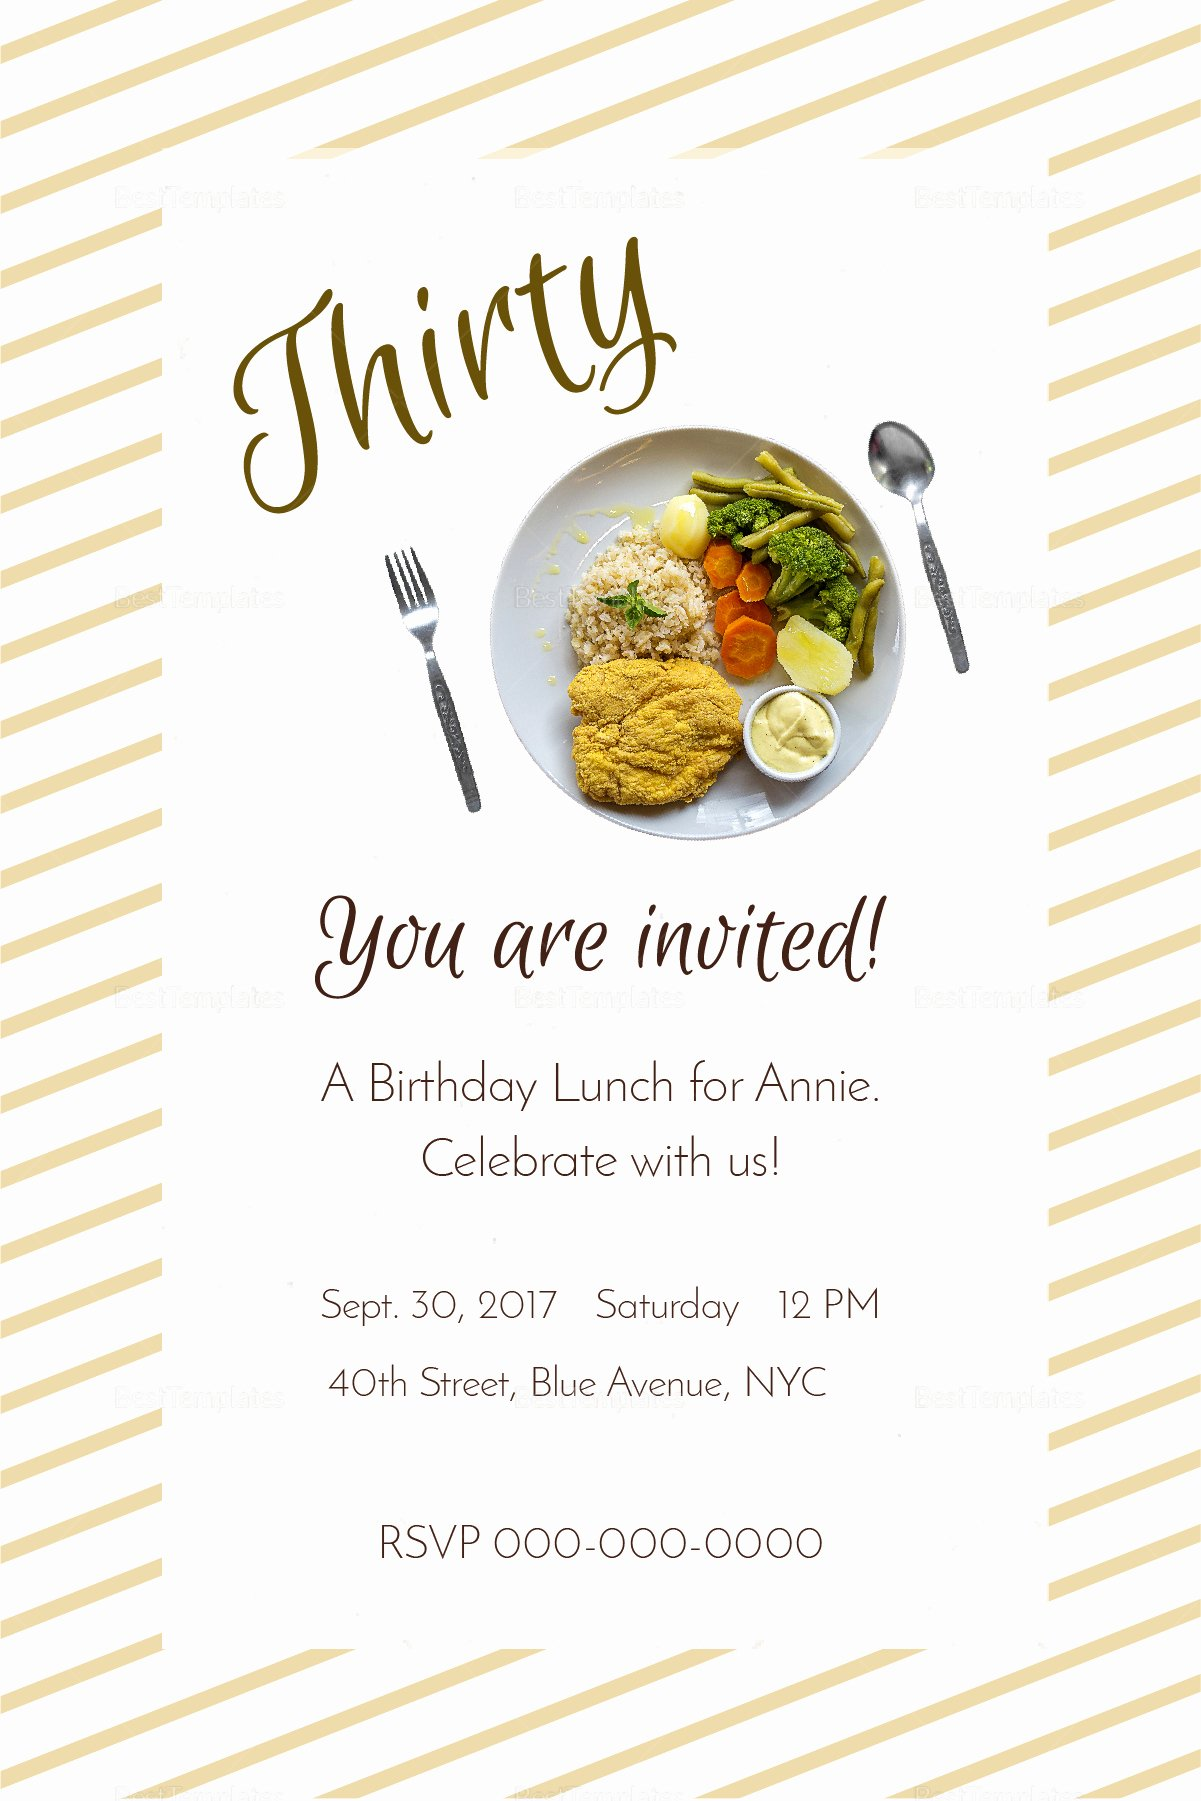 Free Lunch Invitation Template Inspirational Birthday Lunch Invitation Design Template In Psd Word